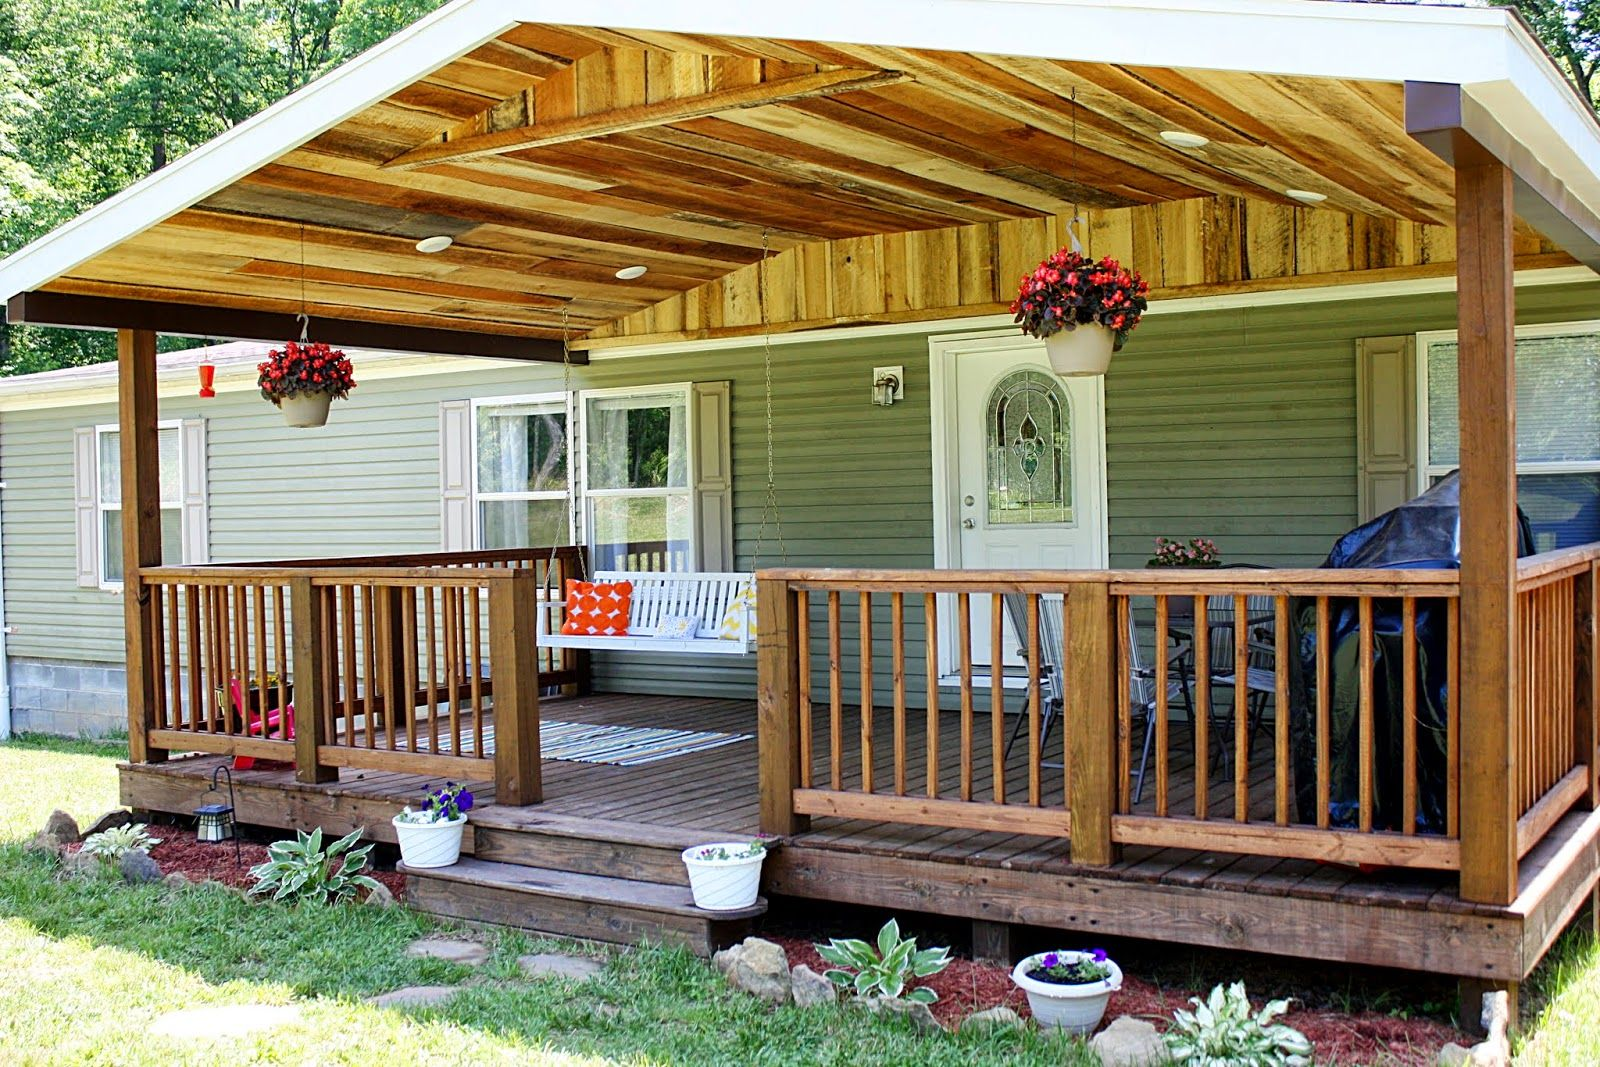 Rough Cut Lumber Porch Roof Covered Front Porch Rustic